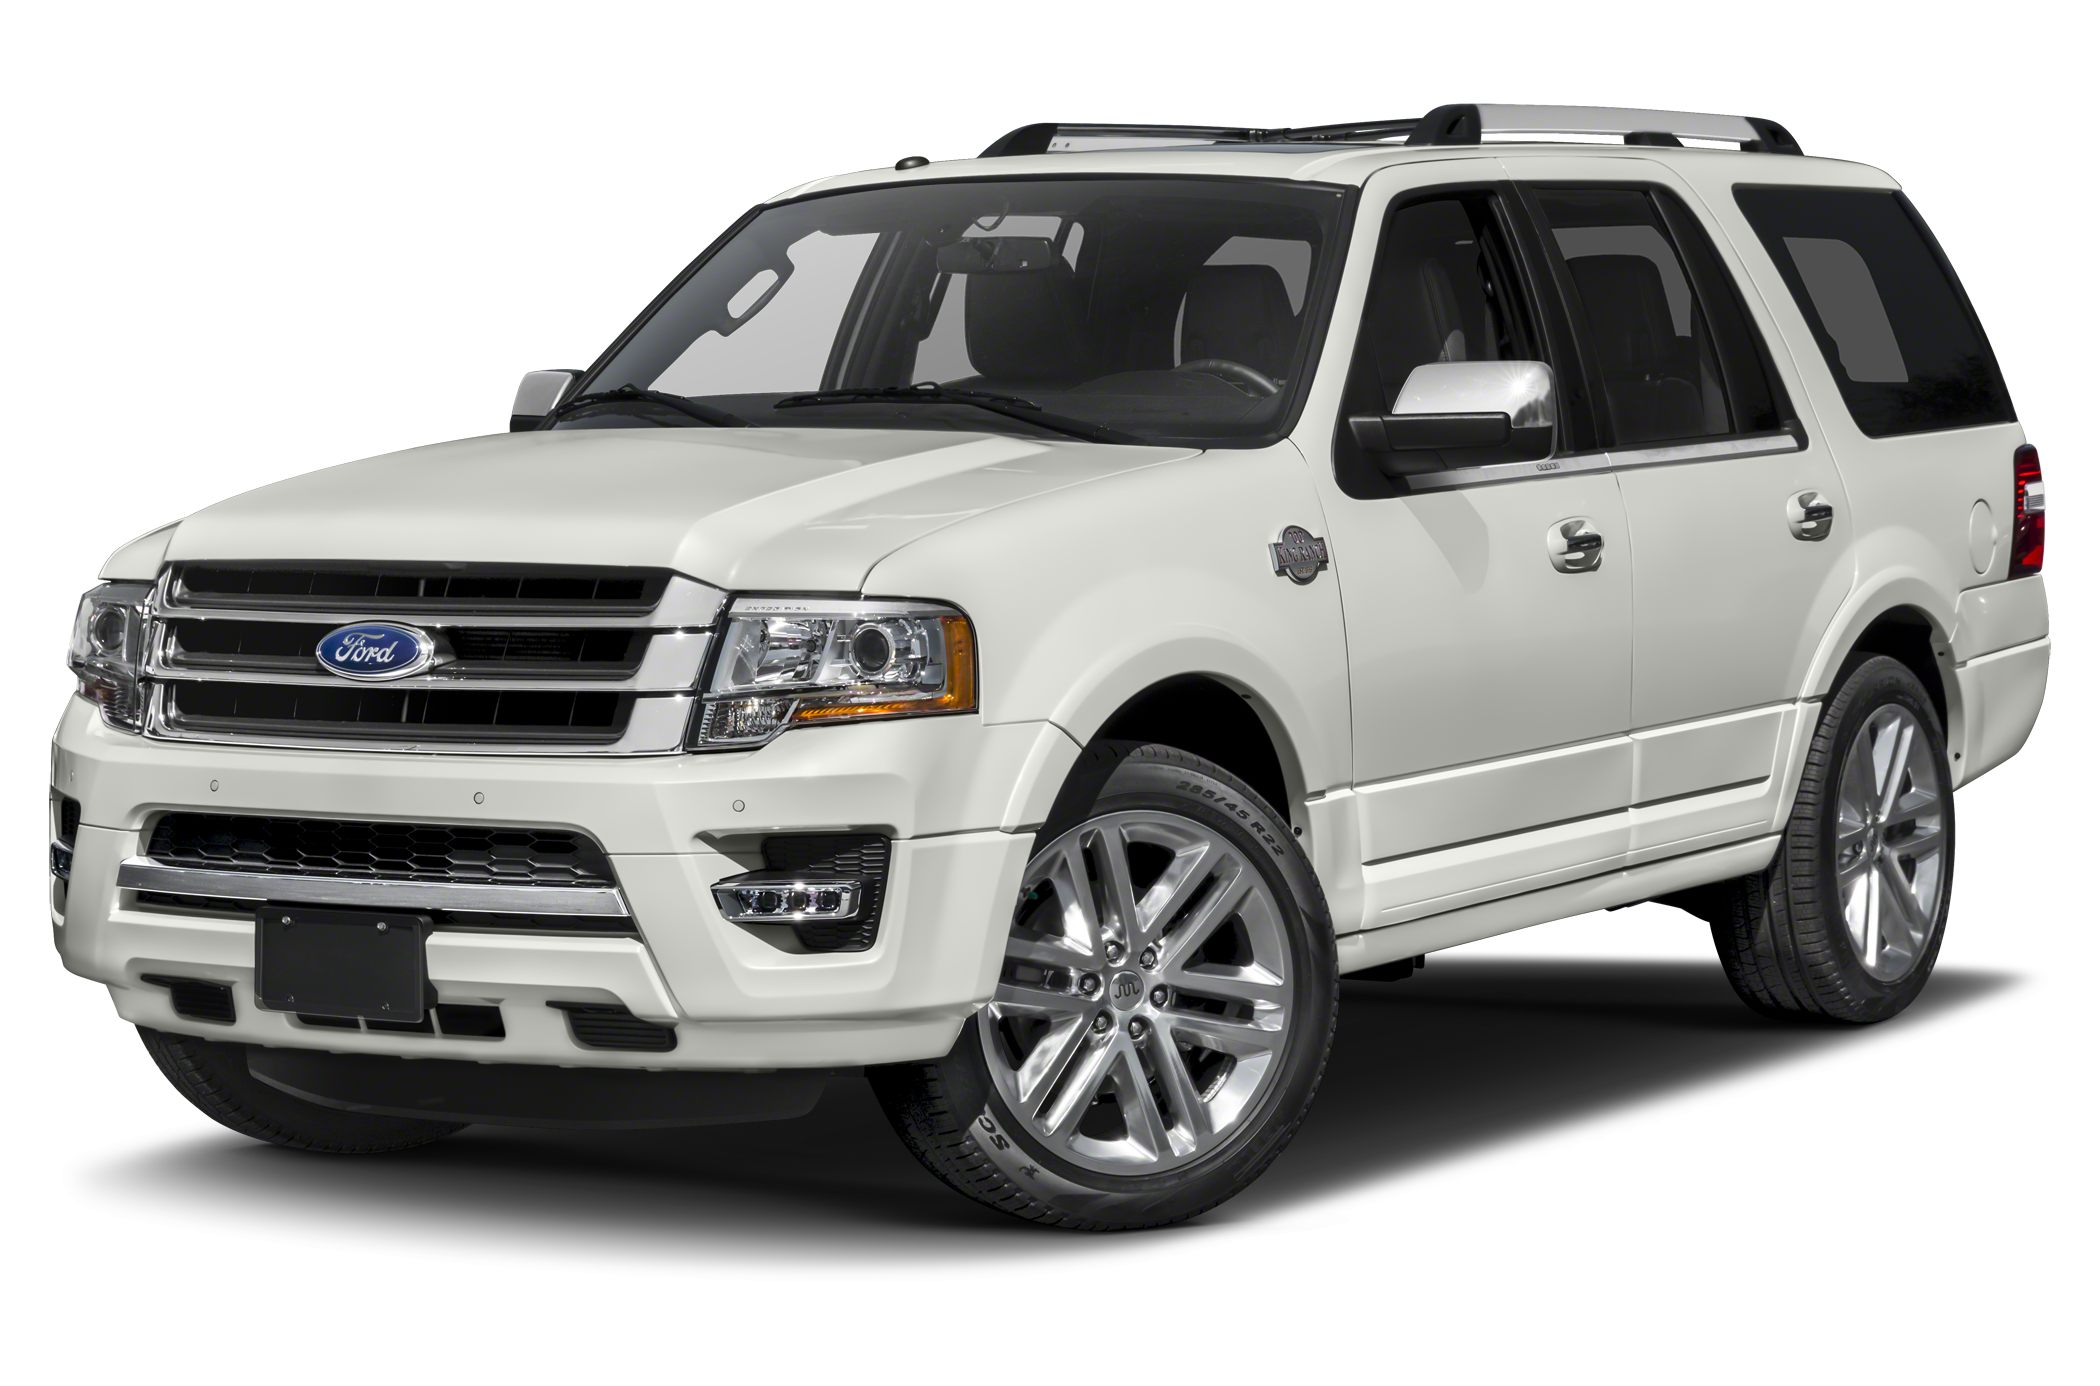 King Ranch Ford >> 2016 Ford Expedition King Ranch 4dr 4x4 Pictures